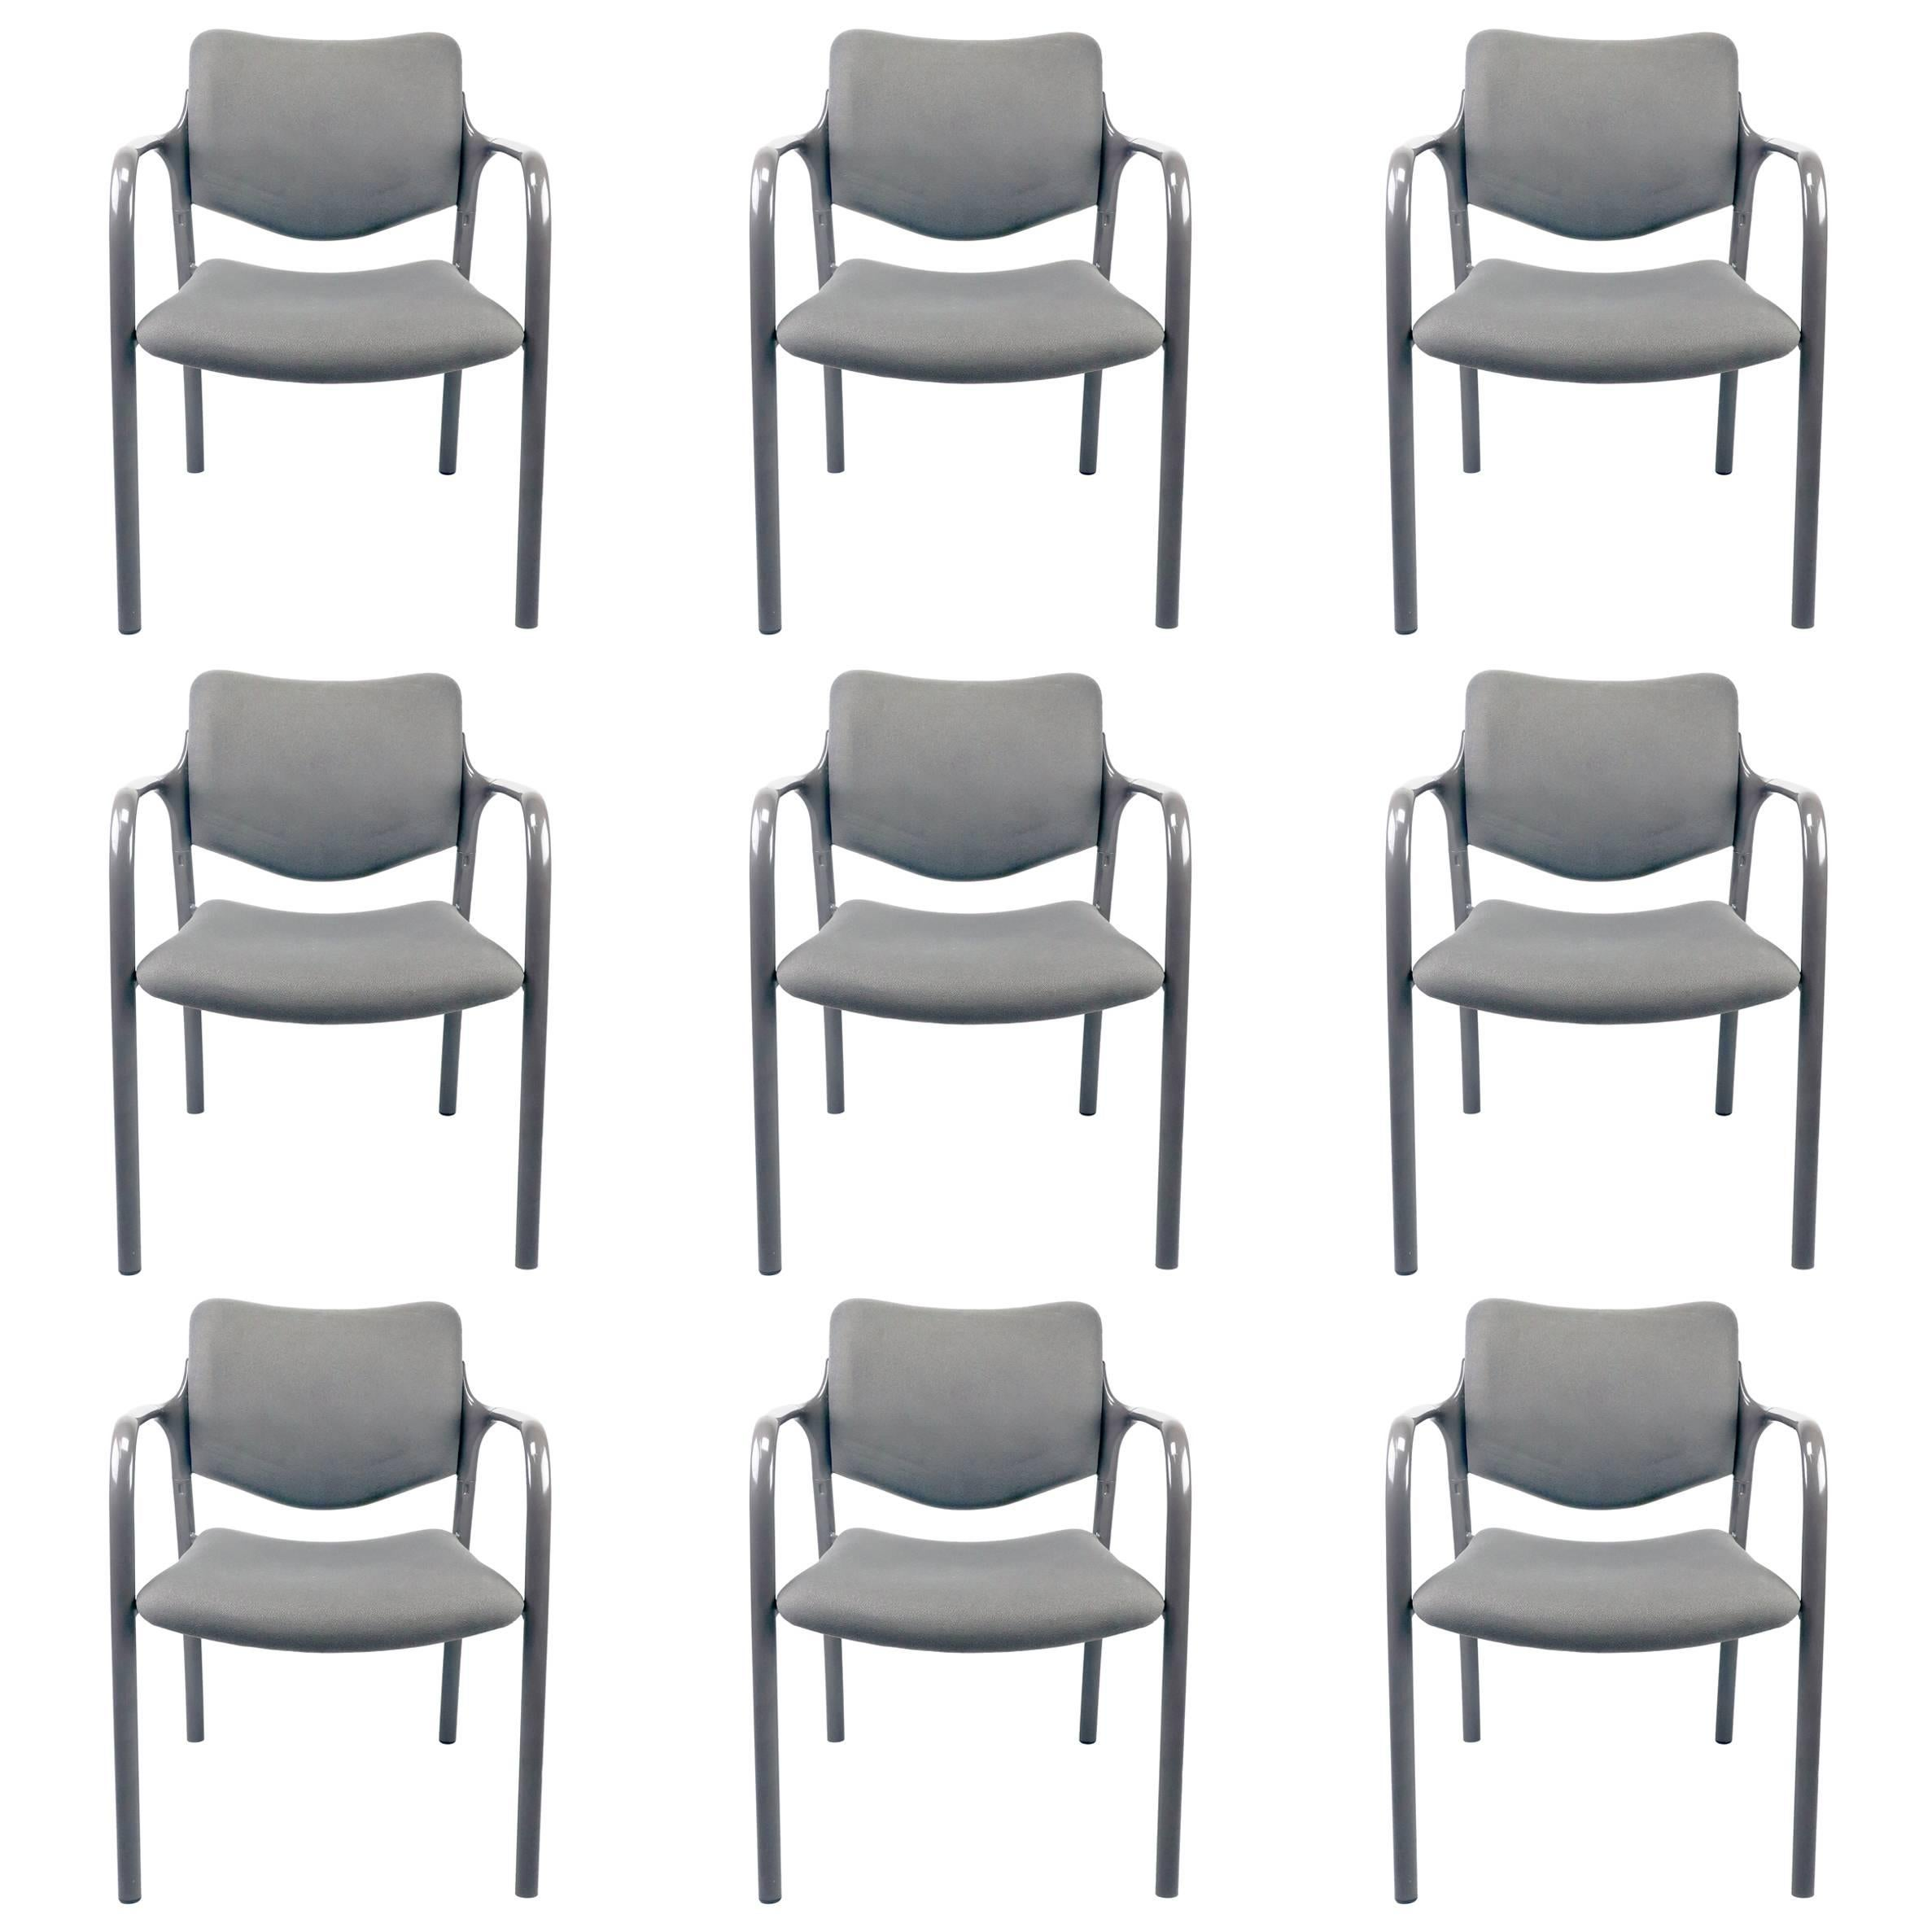 Mark Geotz For Herman Miller Aside Chairs For Sale